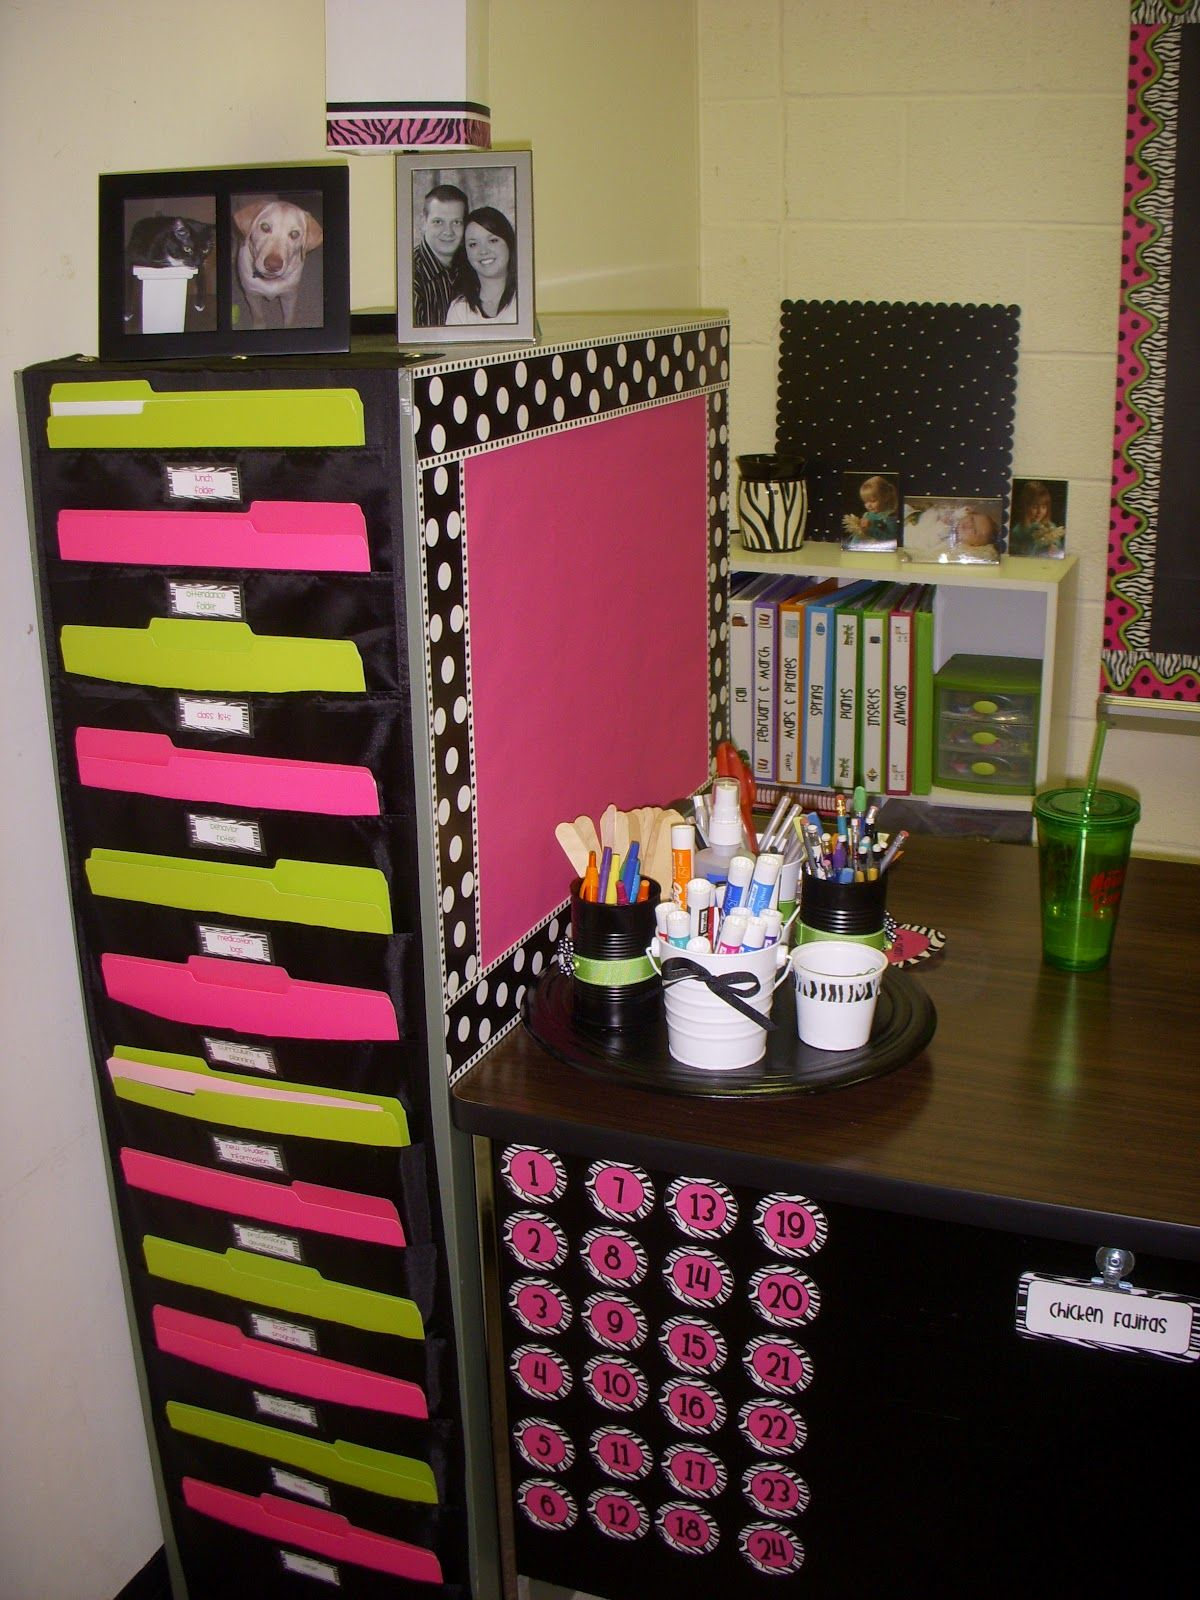 Classroom decor · Middle School Classroom Organization Ideas ... & Middle School Classroom Organization Ideas | Tales of a Teacherista ...